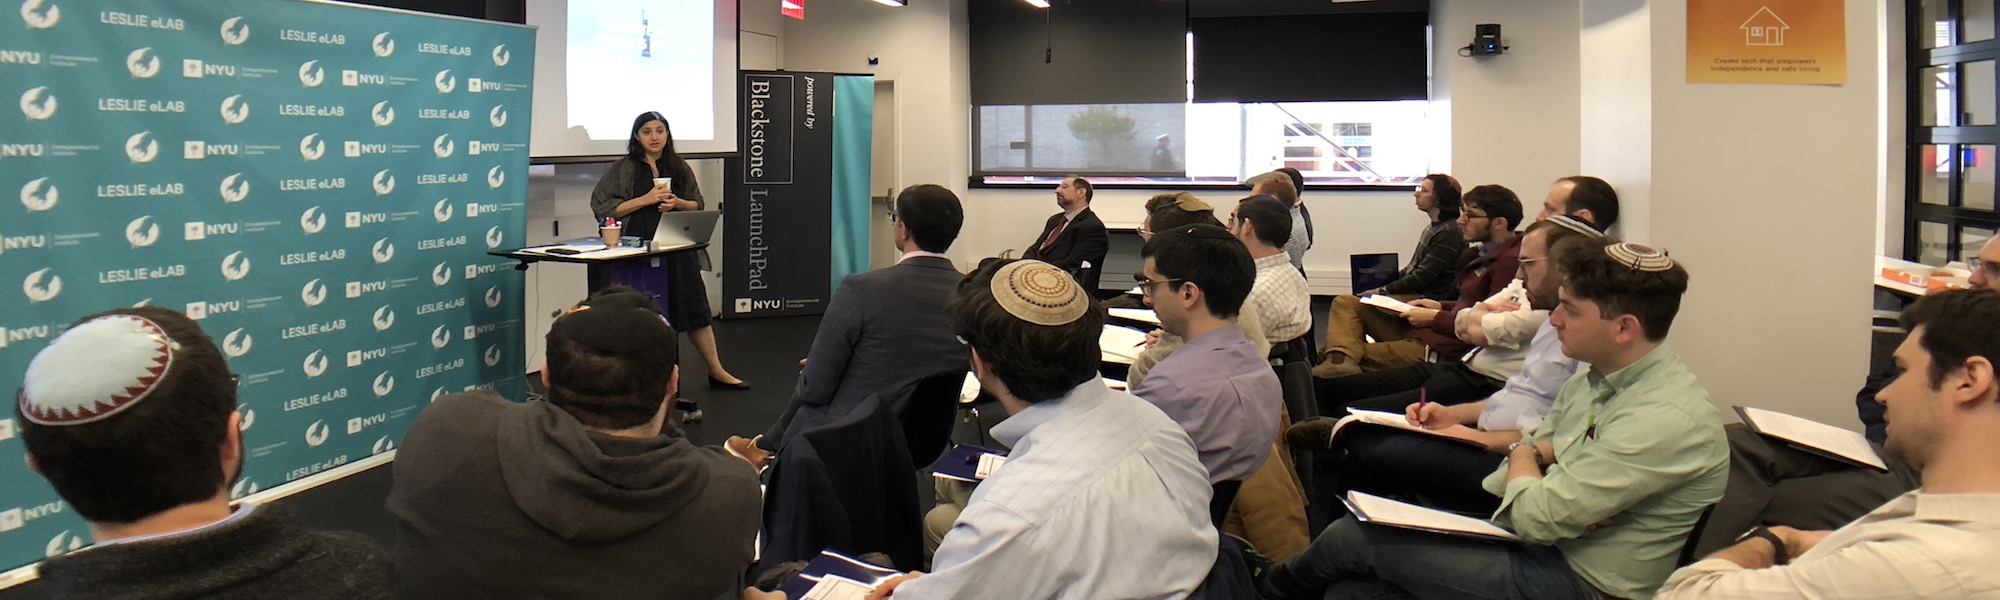 Certificate in Spiritual Leadership and Social Impact with NYU - Yeshivat Chovevei Torah, Setting the standard in rabbinic education